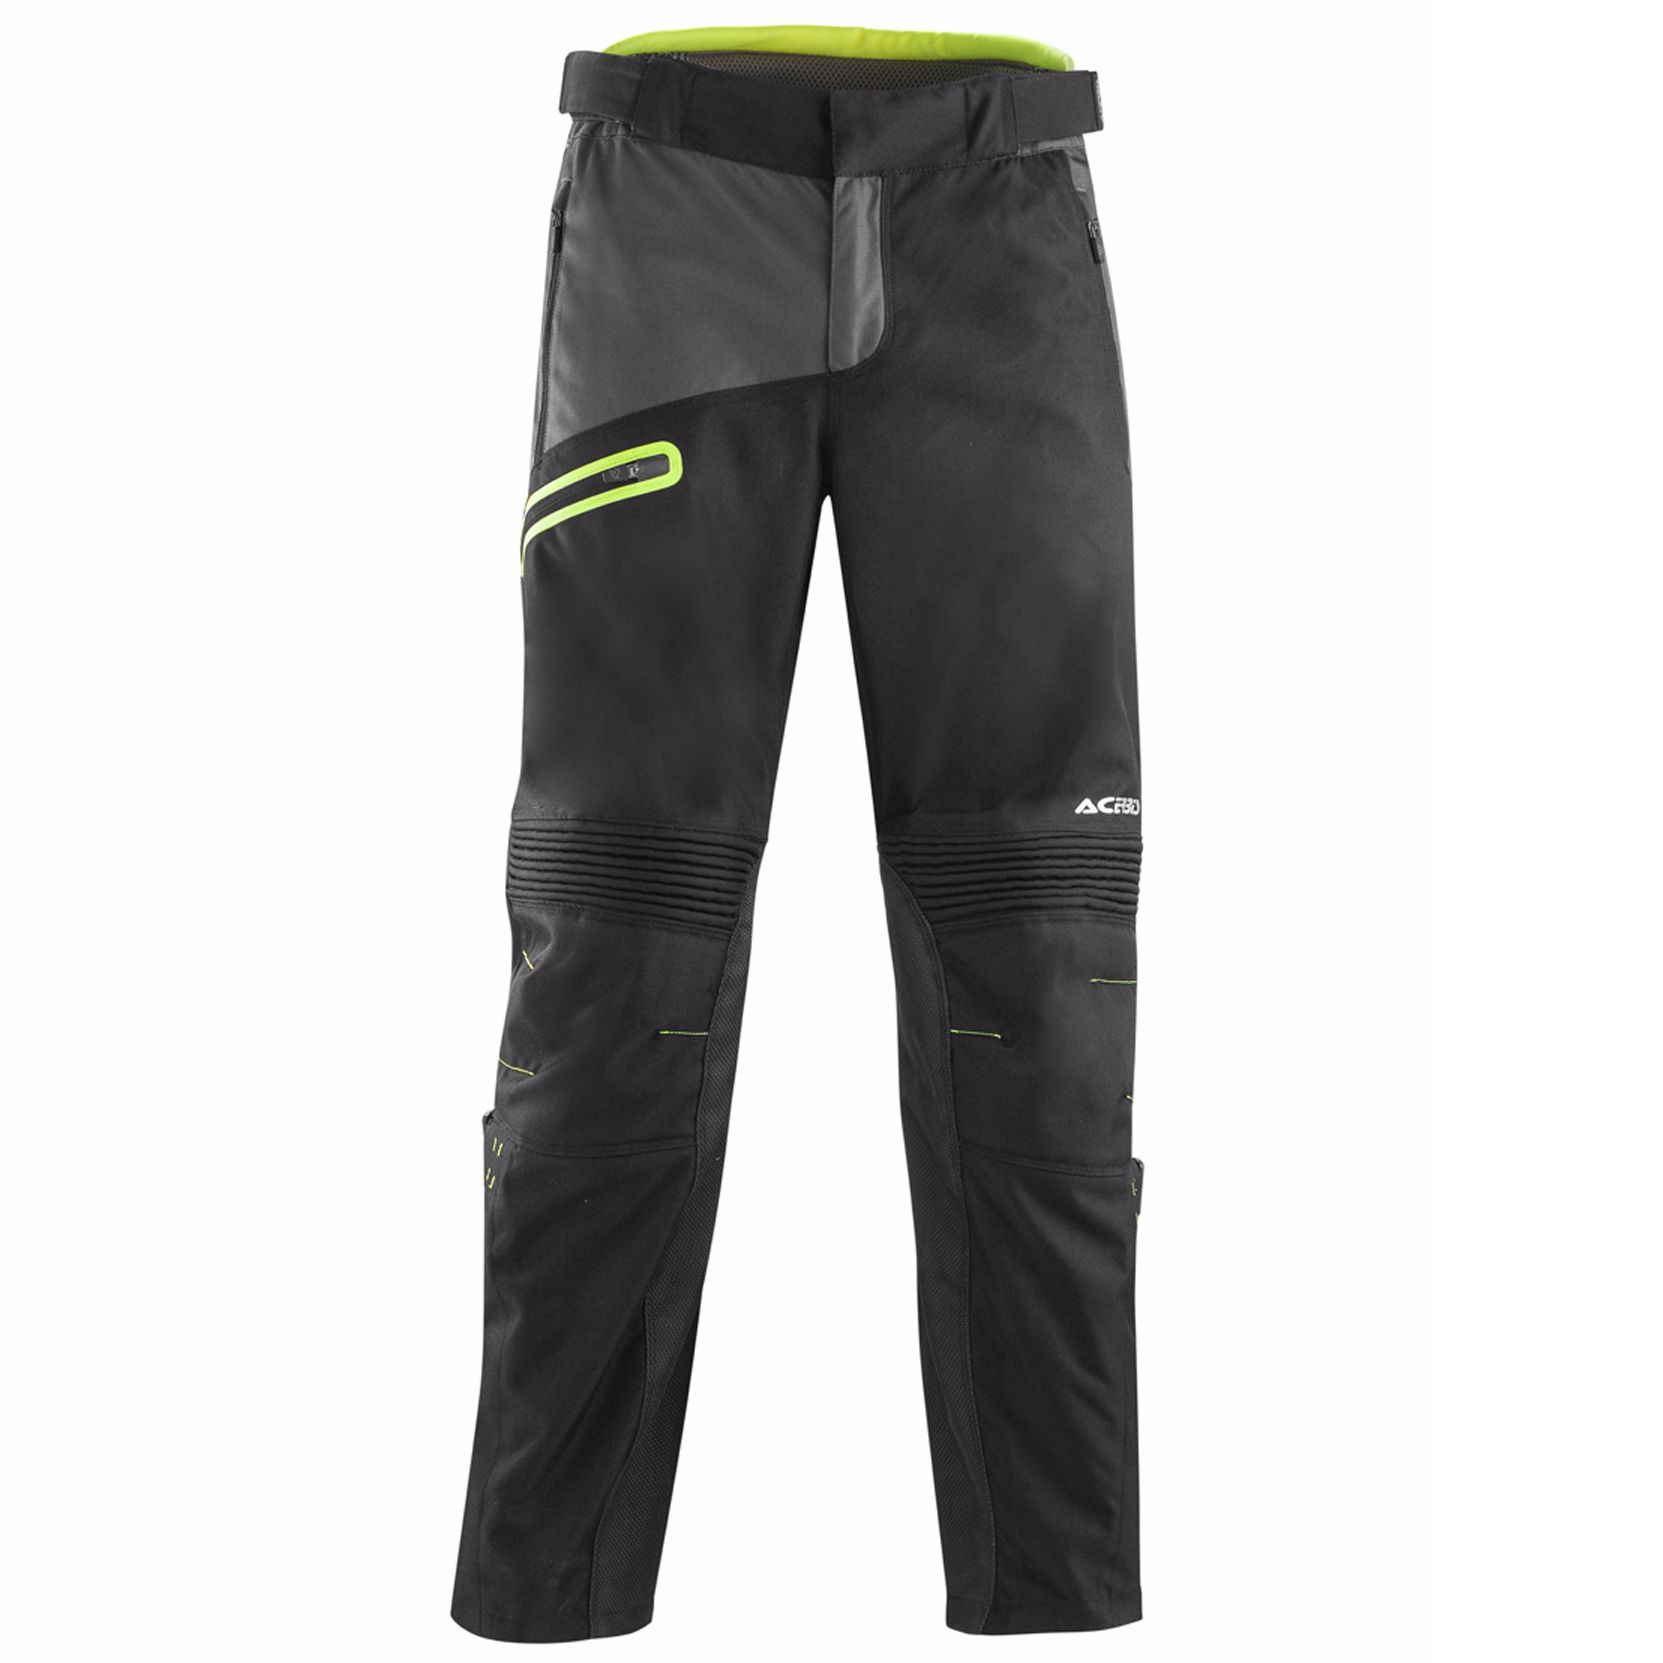 Pantalon Cross Acerbis Enduro One - Noir Jaune Fluo -